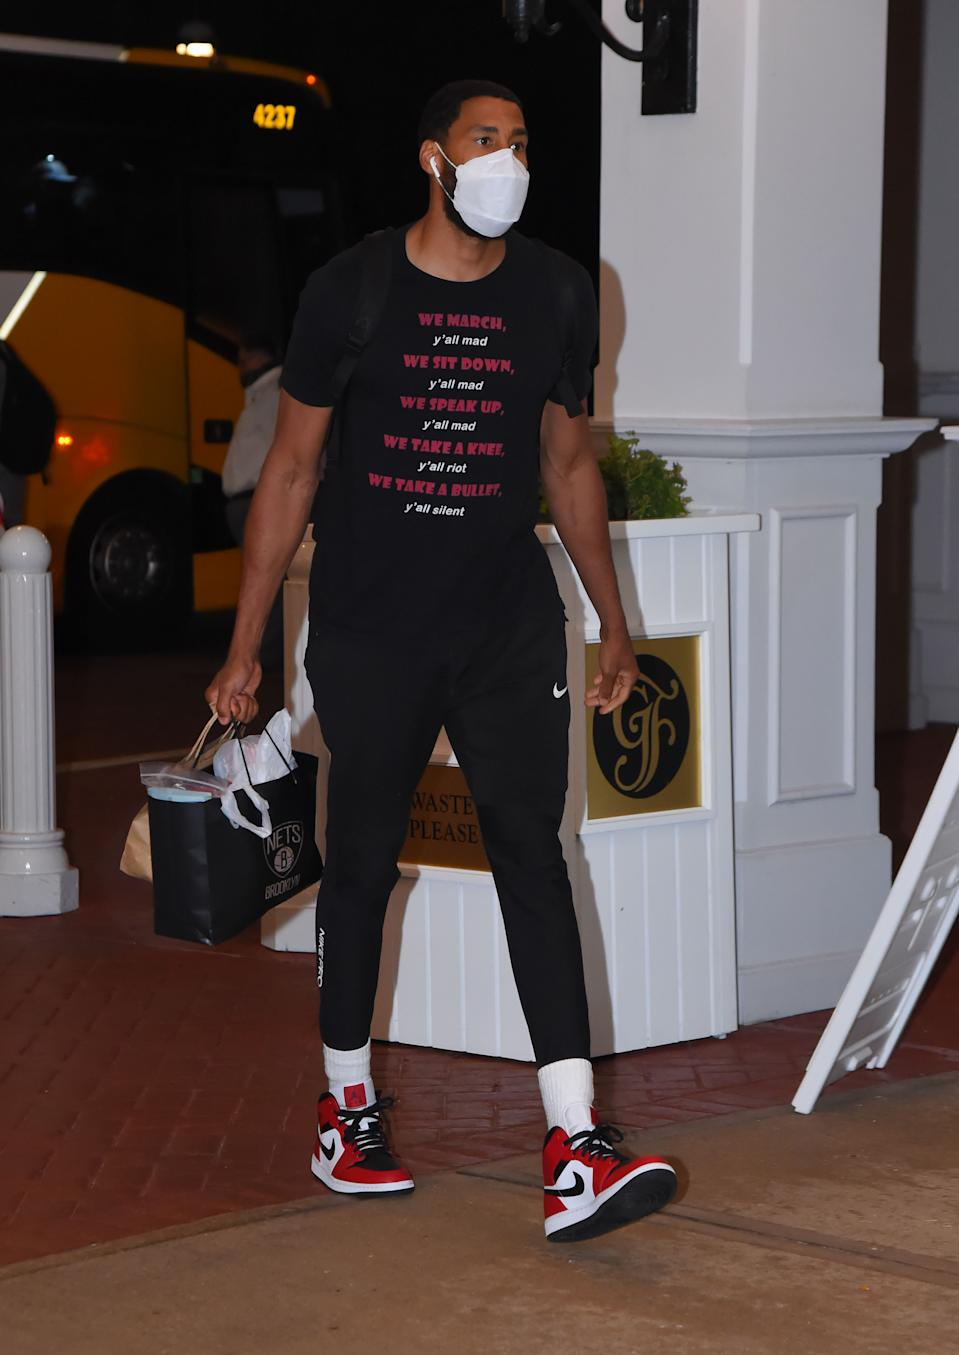 Garrett Temple #17 of the Brooklyn Nets arrives at the hotel as part of the NBA Restart 2020 on July 7, 2020 in Orlando, Florida. (Photo by Bill Baptist/NBAE via Getty Images)